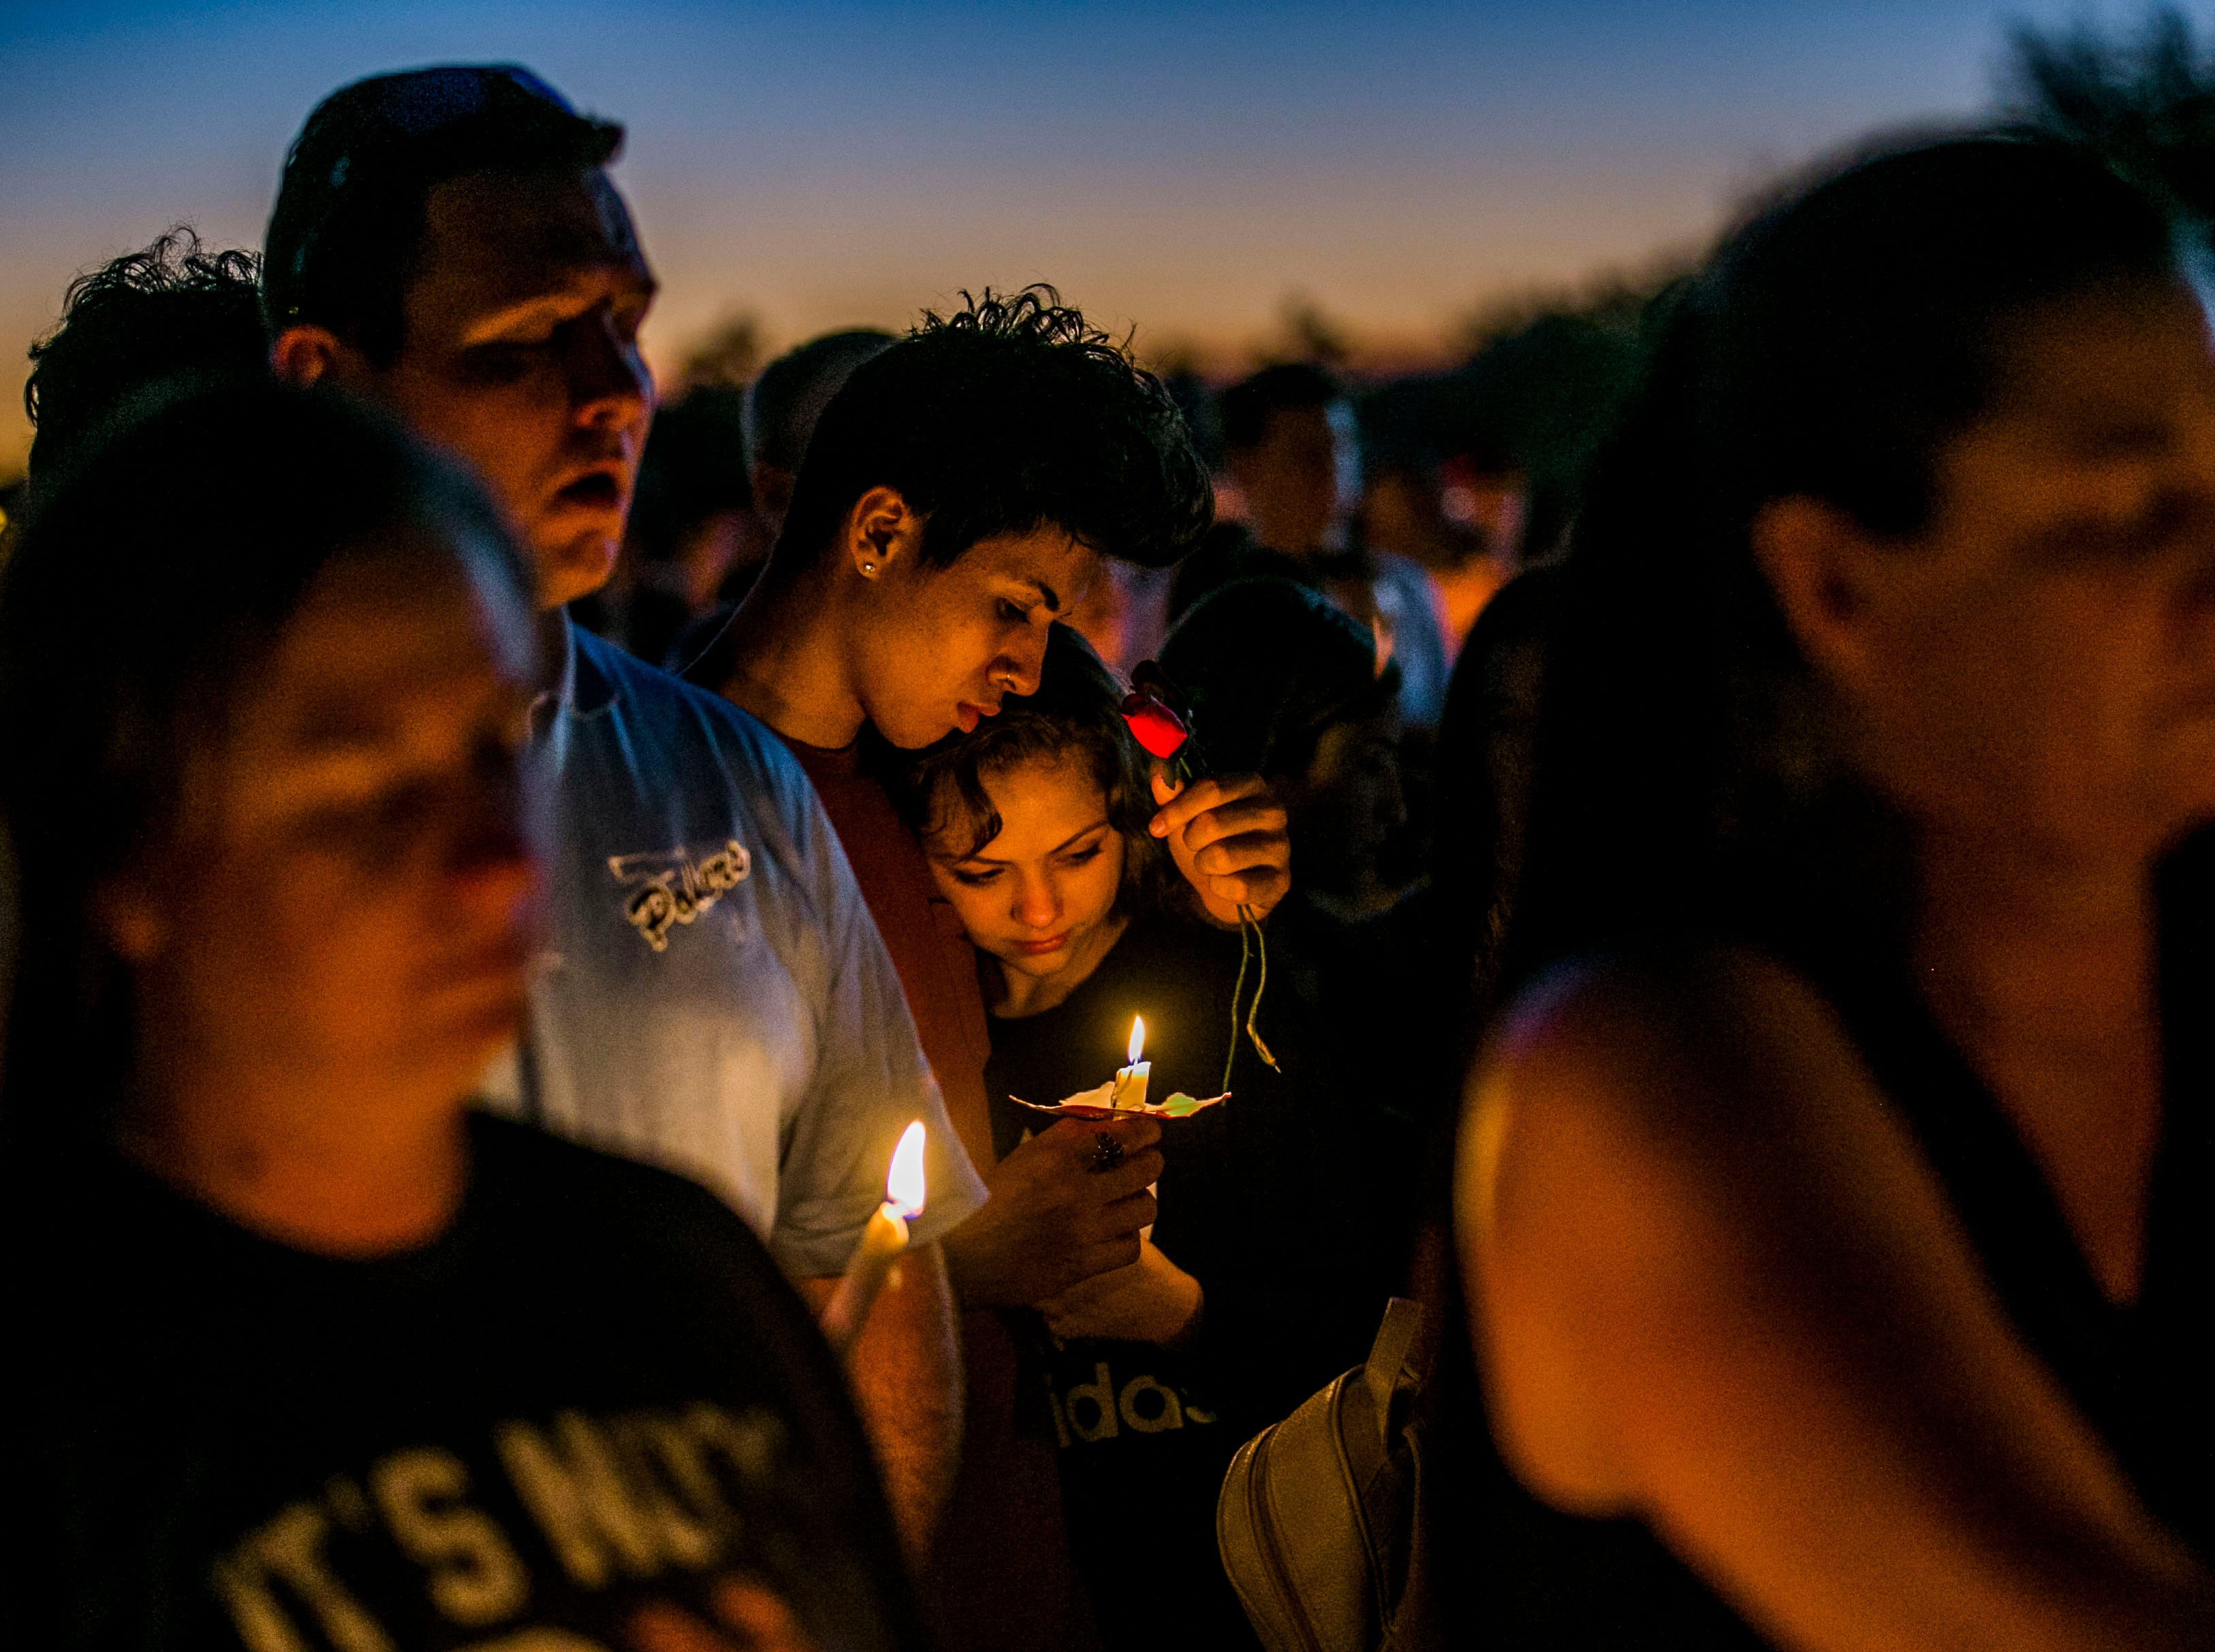 Feb. 15, 2018: People mourn together during a candlelight vigil at Pine Trails Park in Parkland, Fla. after a shooting at Marjory Stoneman Douglas High School in Parkland, Fla. on Wednesday that took 17 lives.